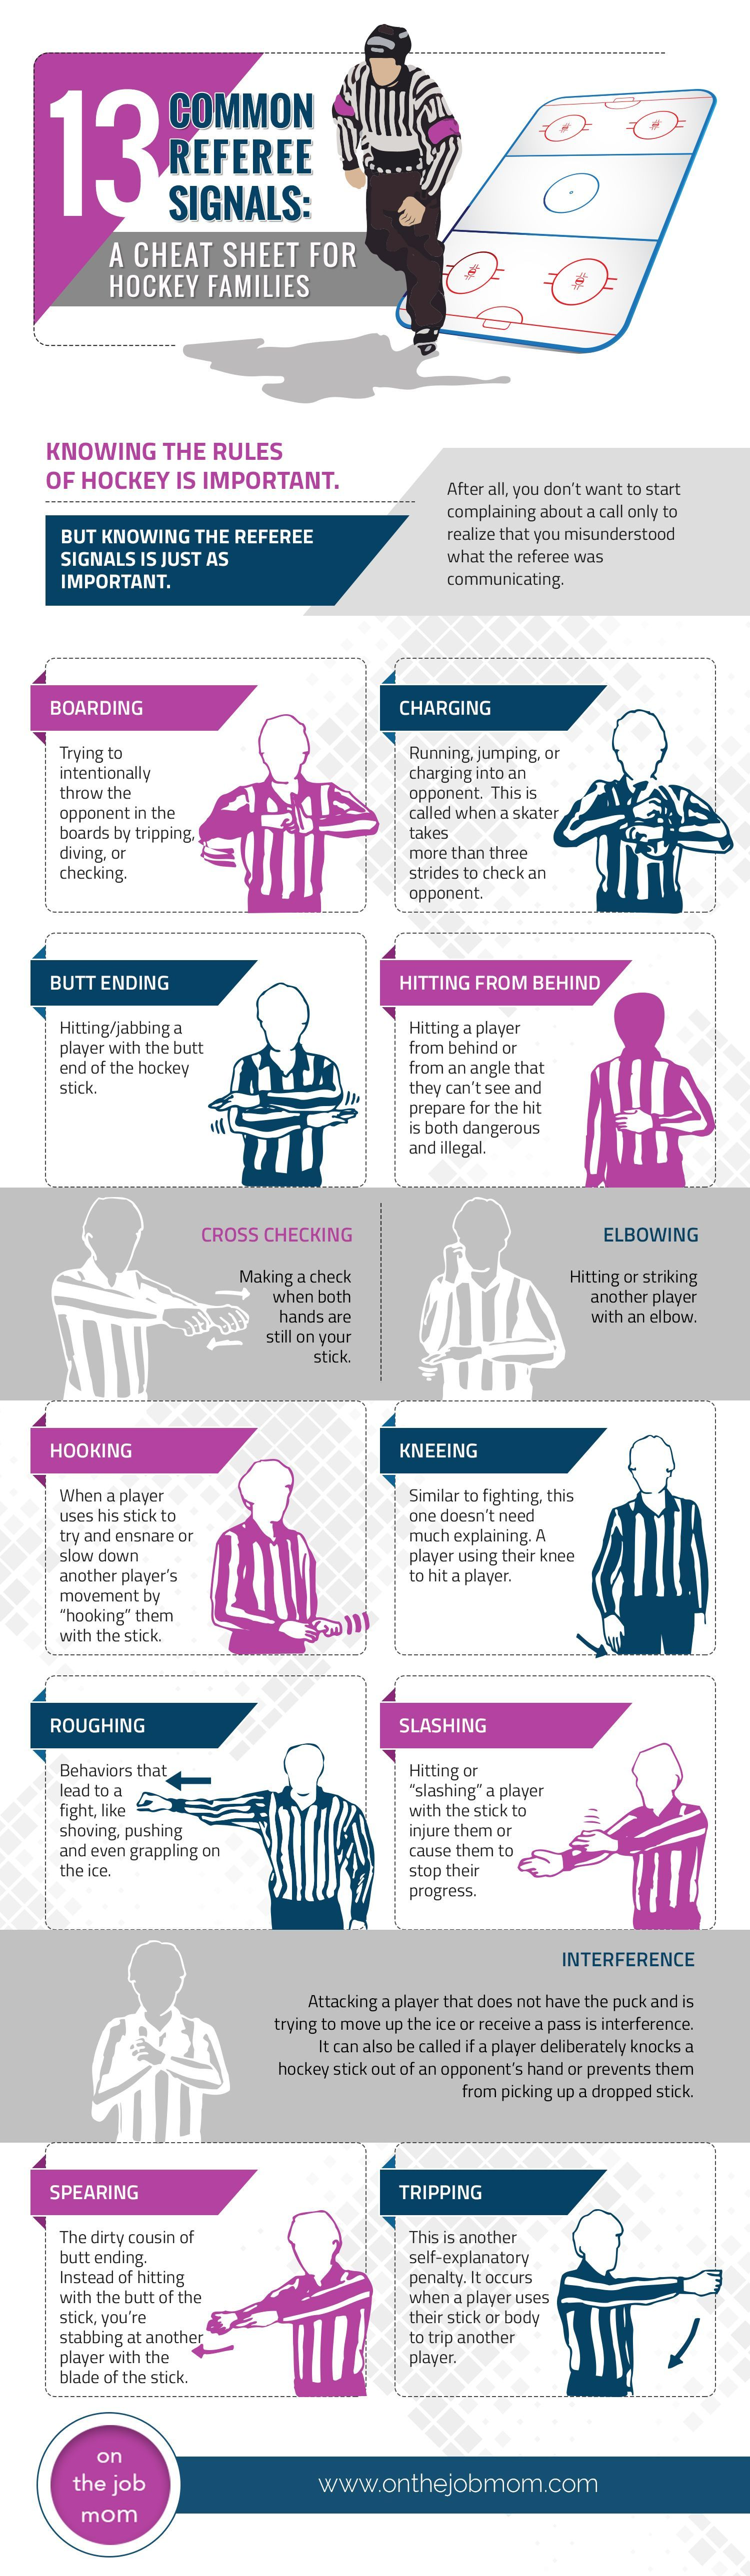 13 Referee Signals For Hockey Moms It S Nice To Know Why Kids Are Heading To The Box Here S A Guide To Help You Understa Hockey Hockey Mom Hockey Tournaments